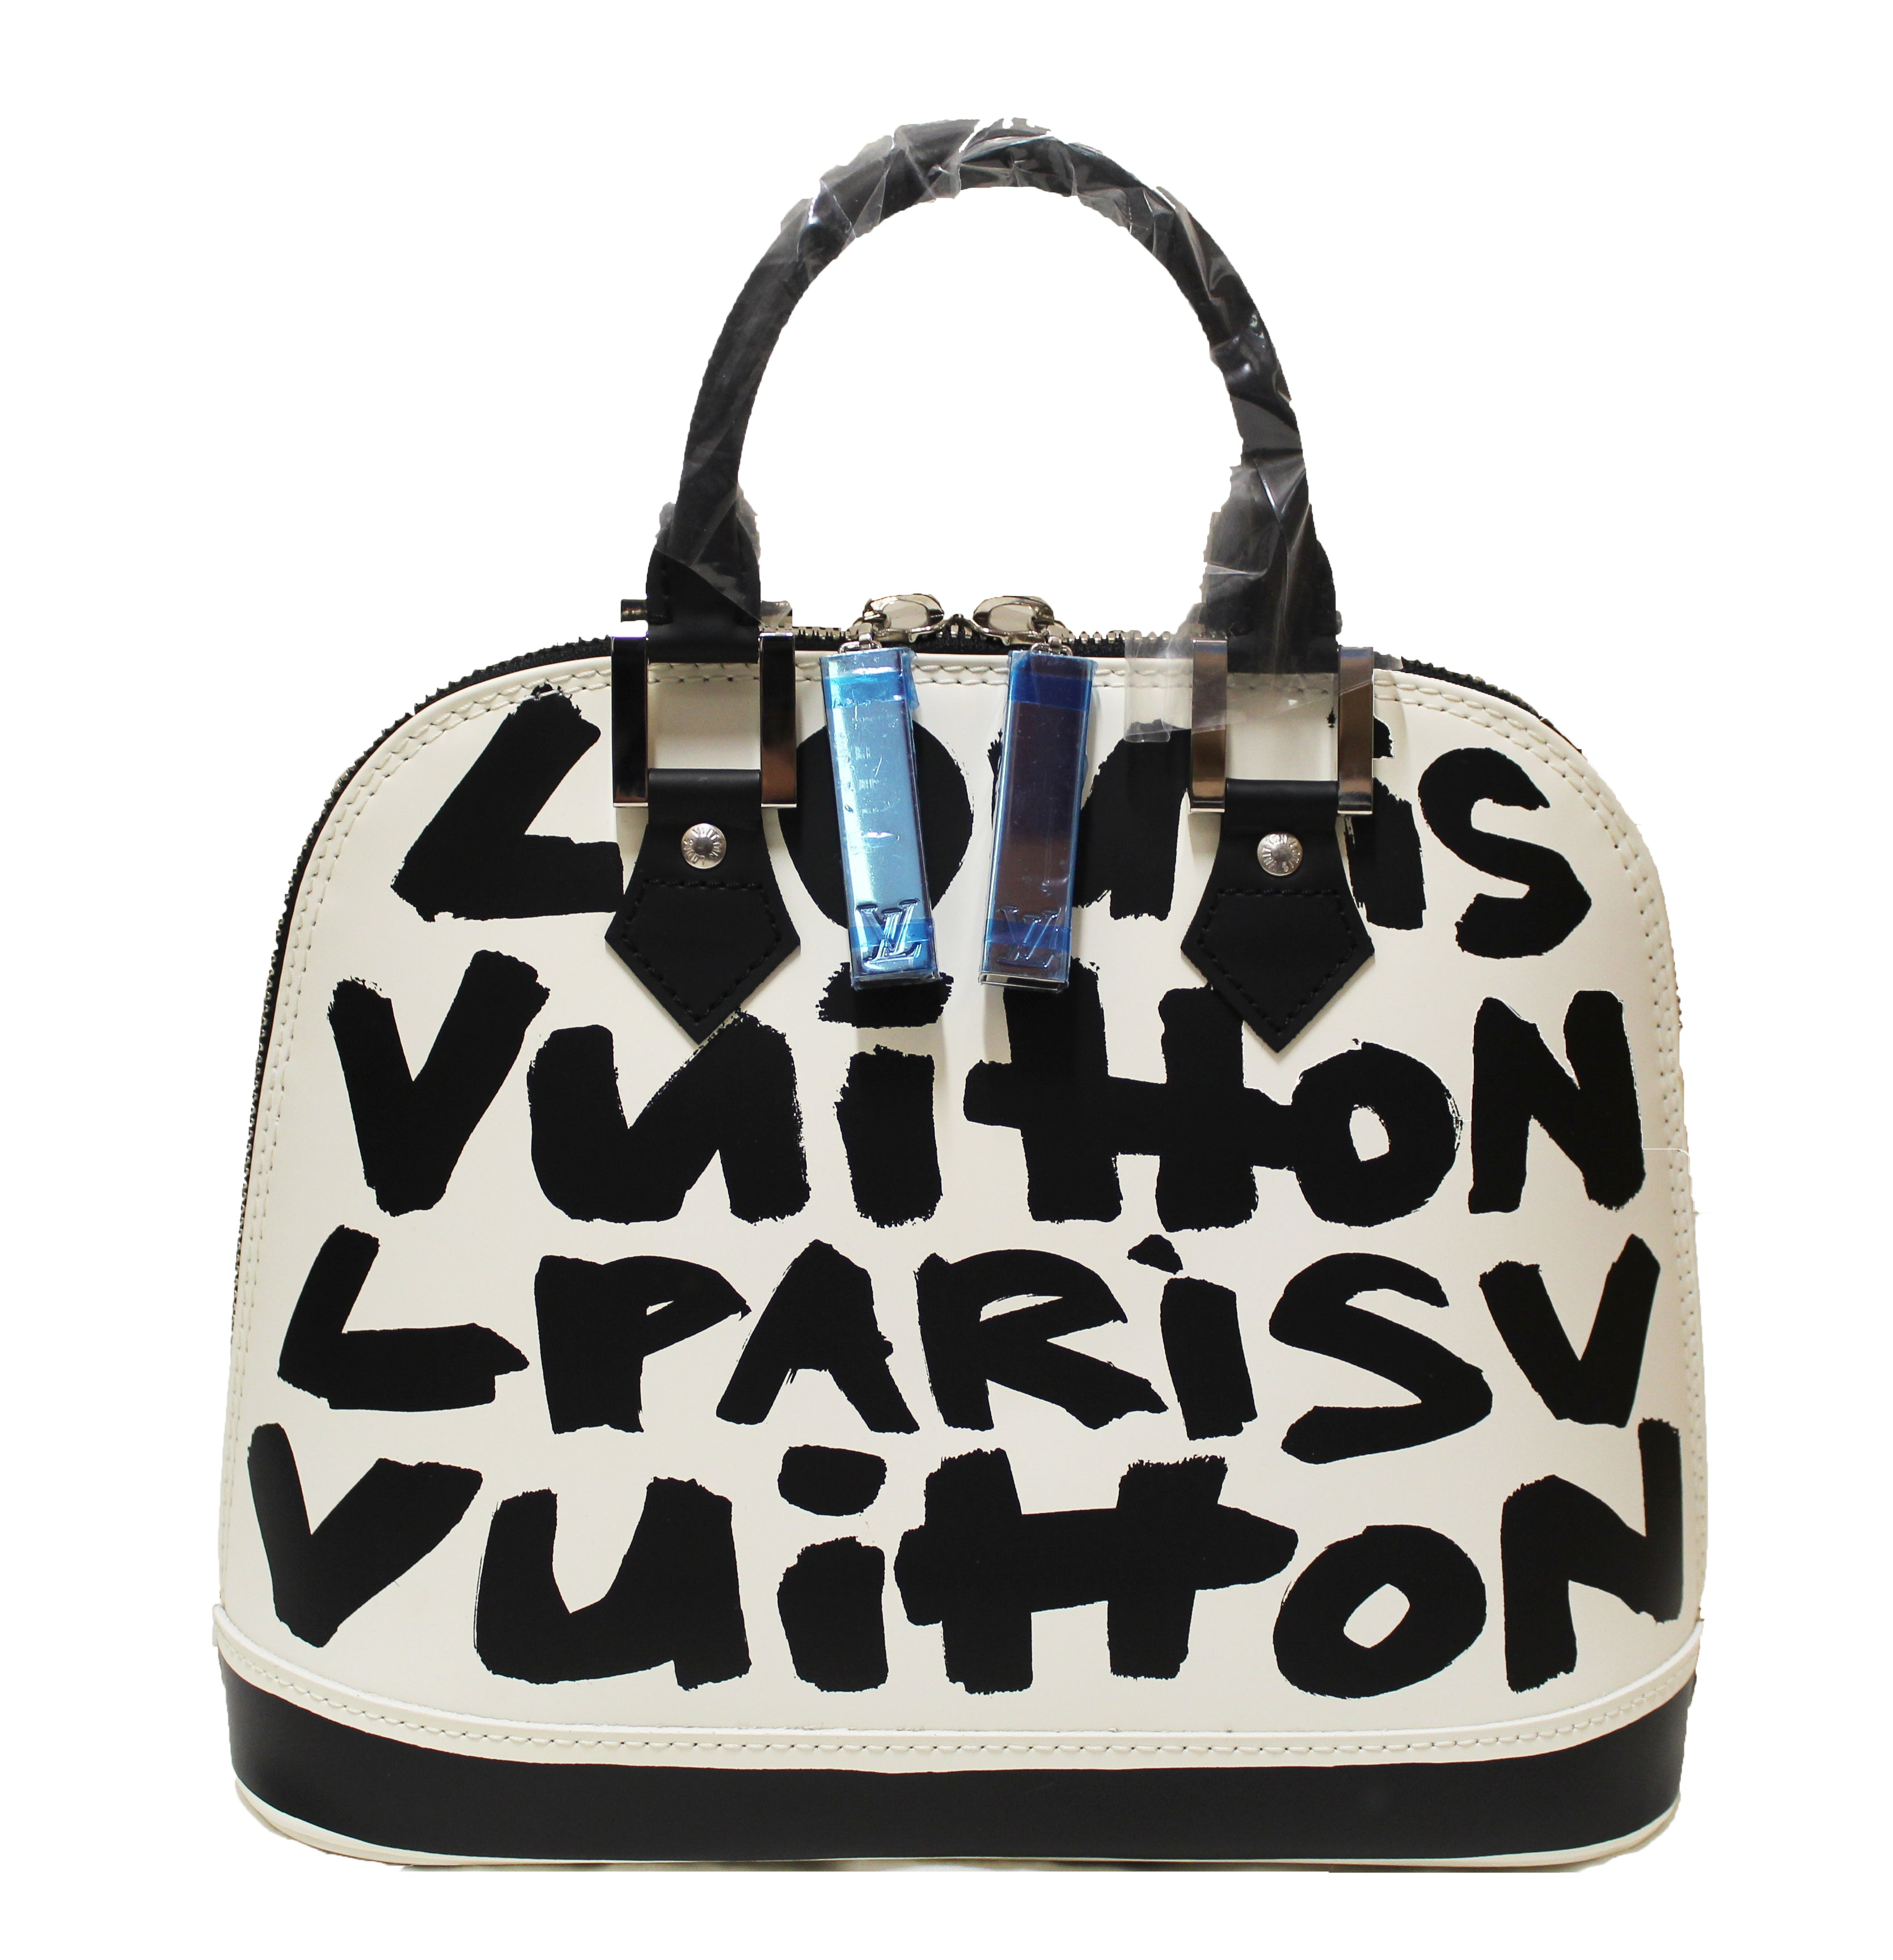 Authentic New Limited Edition Louis Vuitton White Alma MM Sprouse Black Graffiti Hand Bag